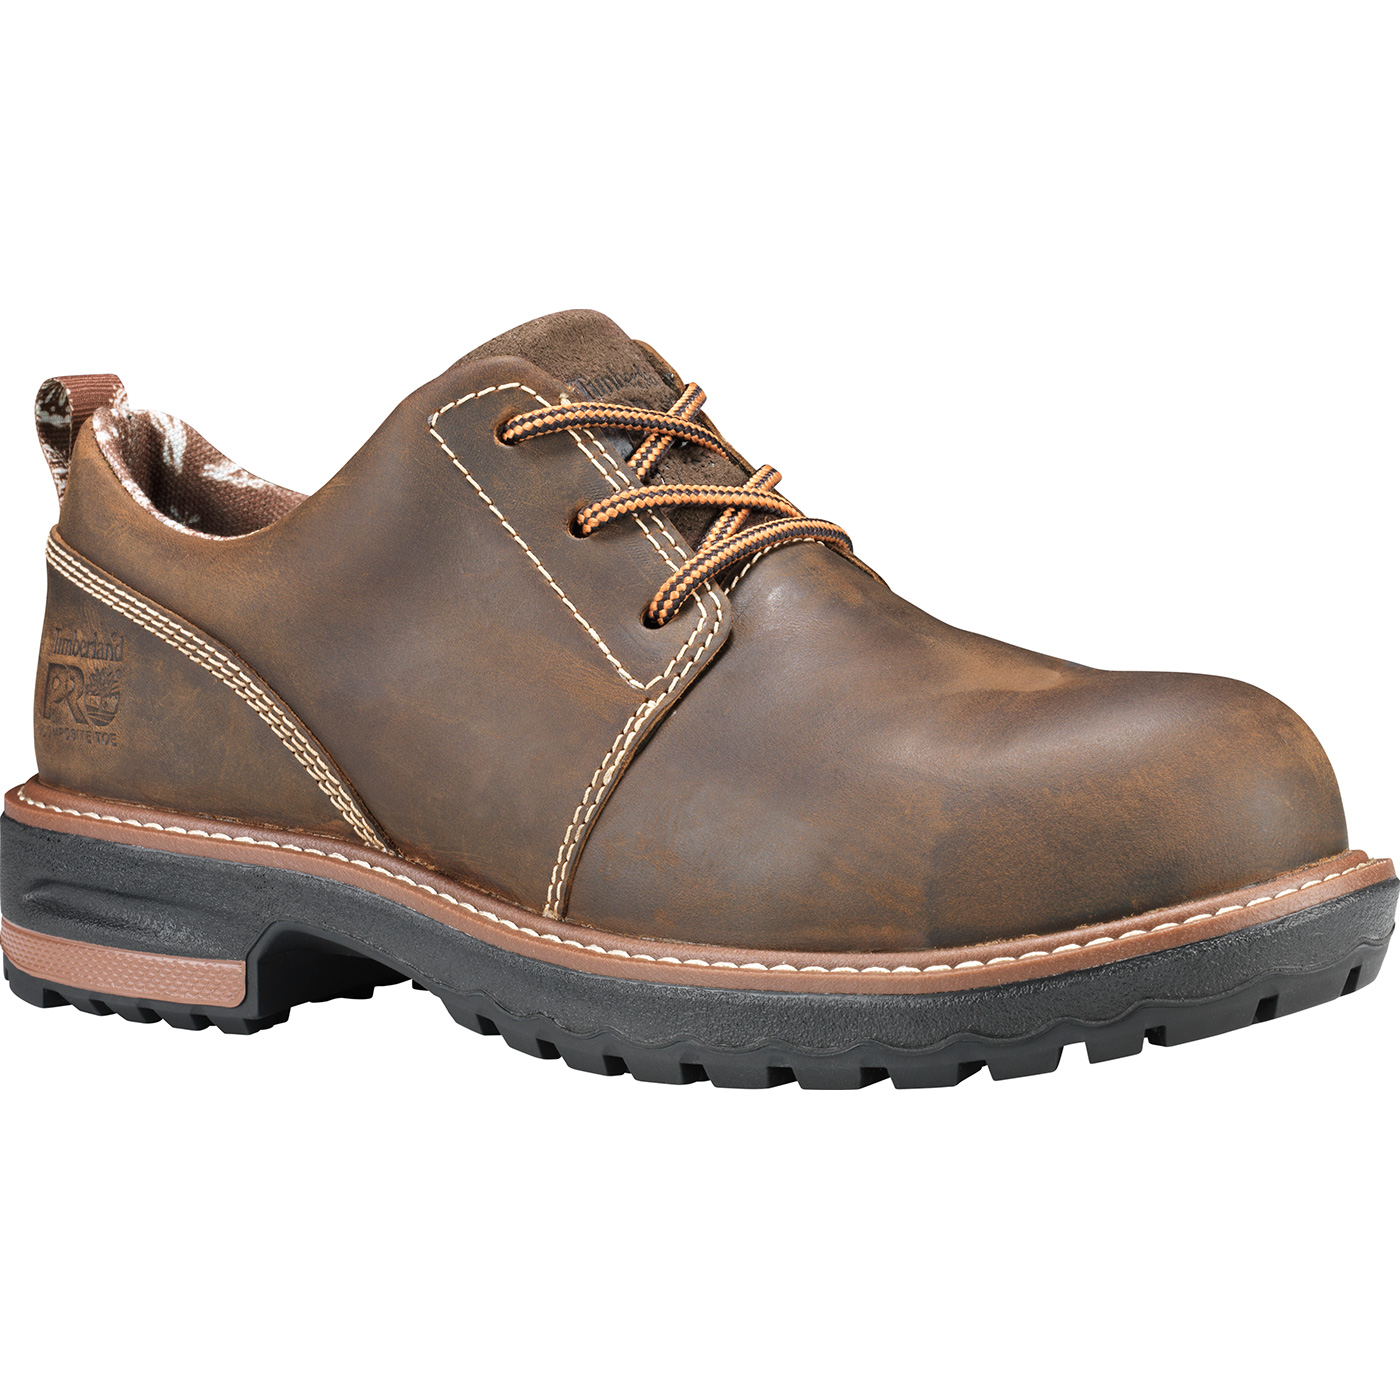 Timberland PRO Hightower Women s Composite Toe Electrical Hazard  Non-Metallic Work OxfordTimberland PRO Hightower Women s Composite Toe  Electrical Hazard ... 7e9f96c3b